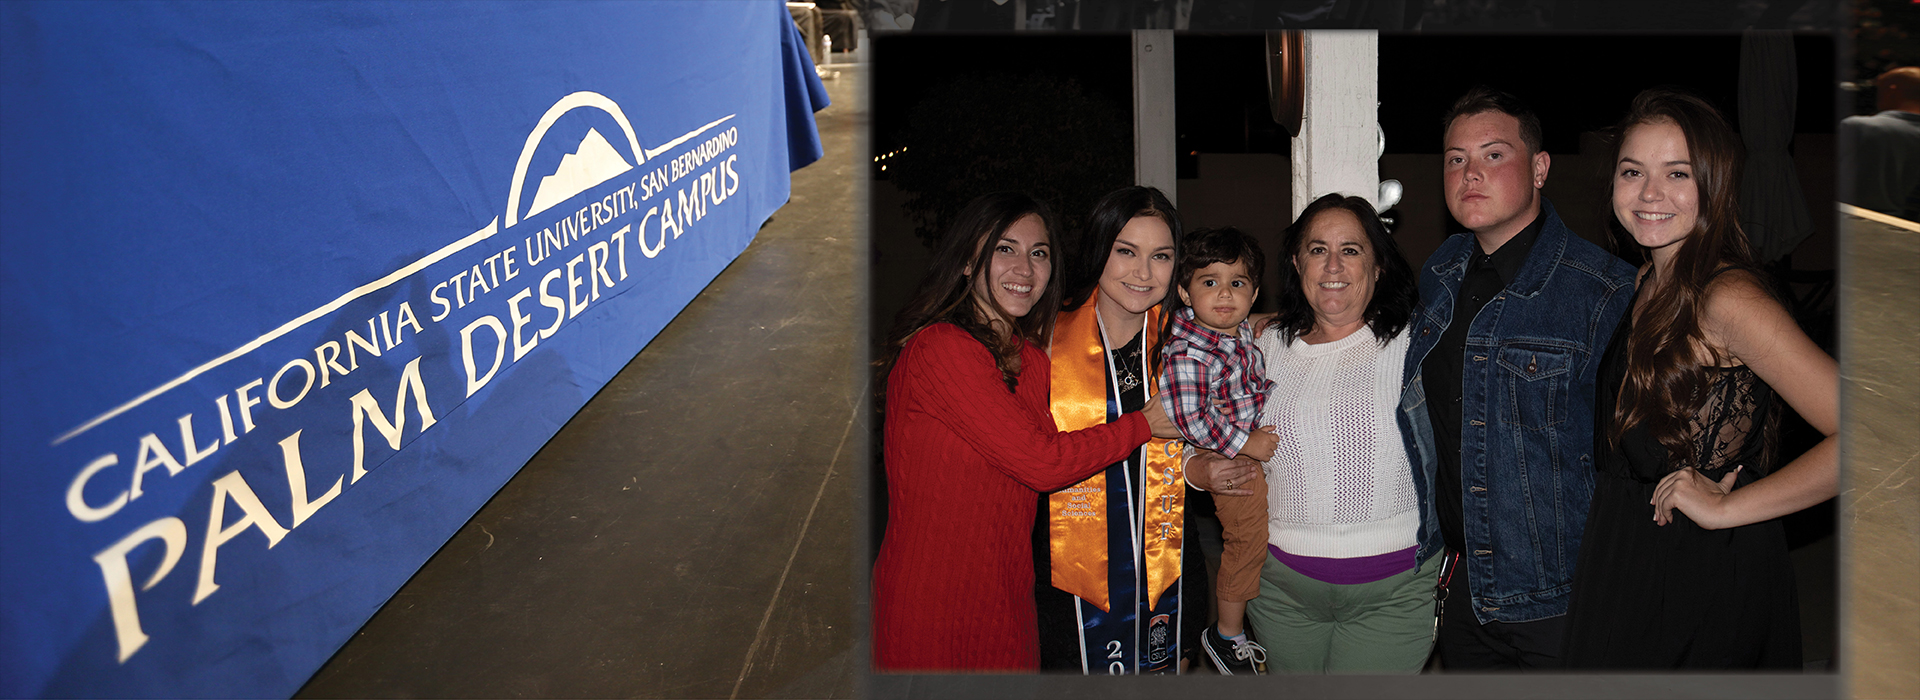 CSUSB Palm Desert Campus graduate completes degree while three of her children attend college